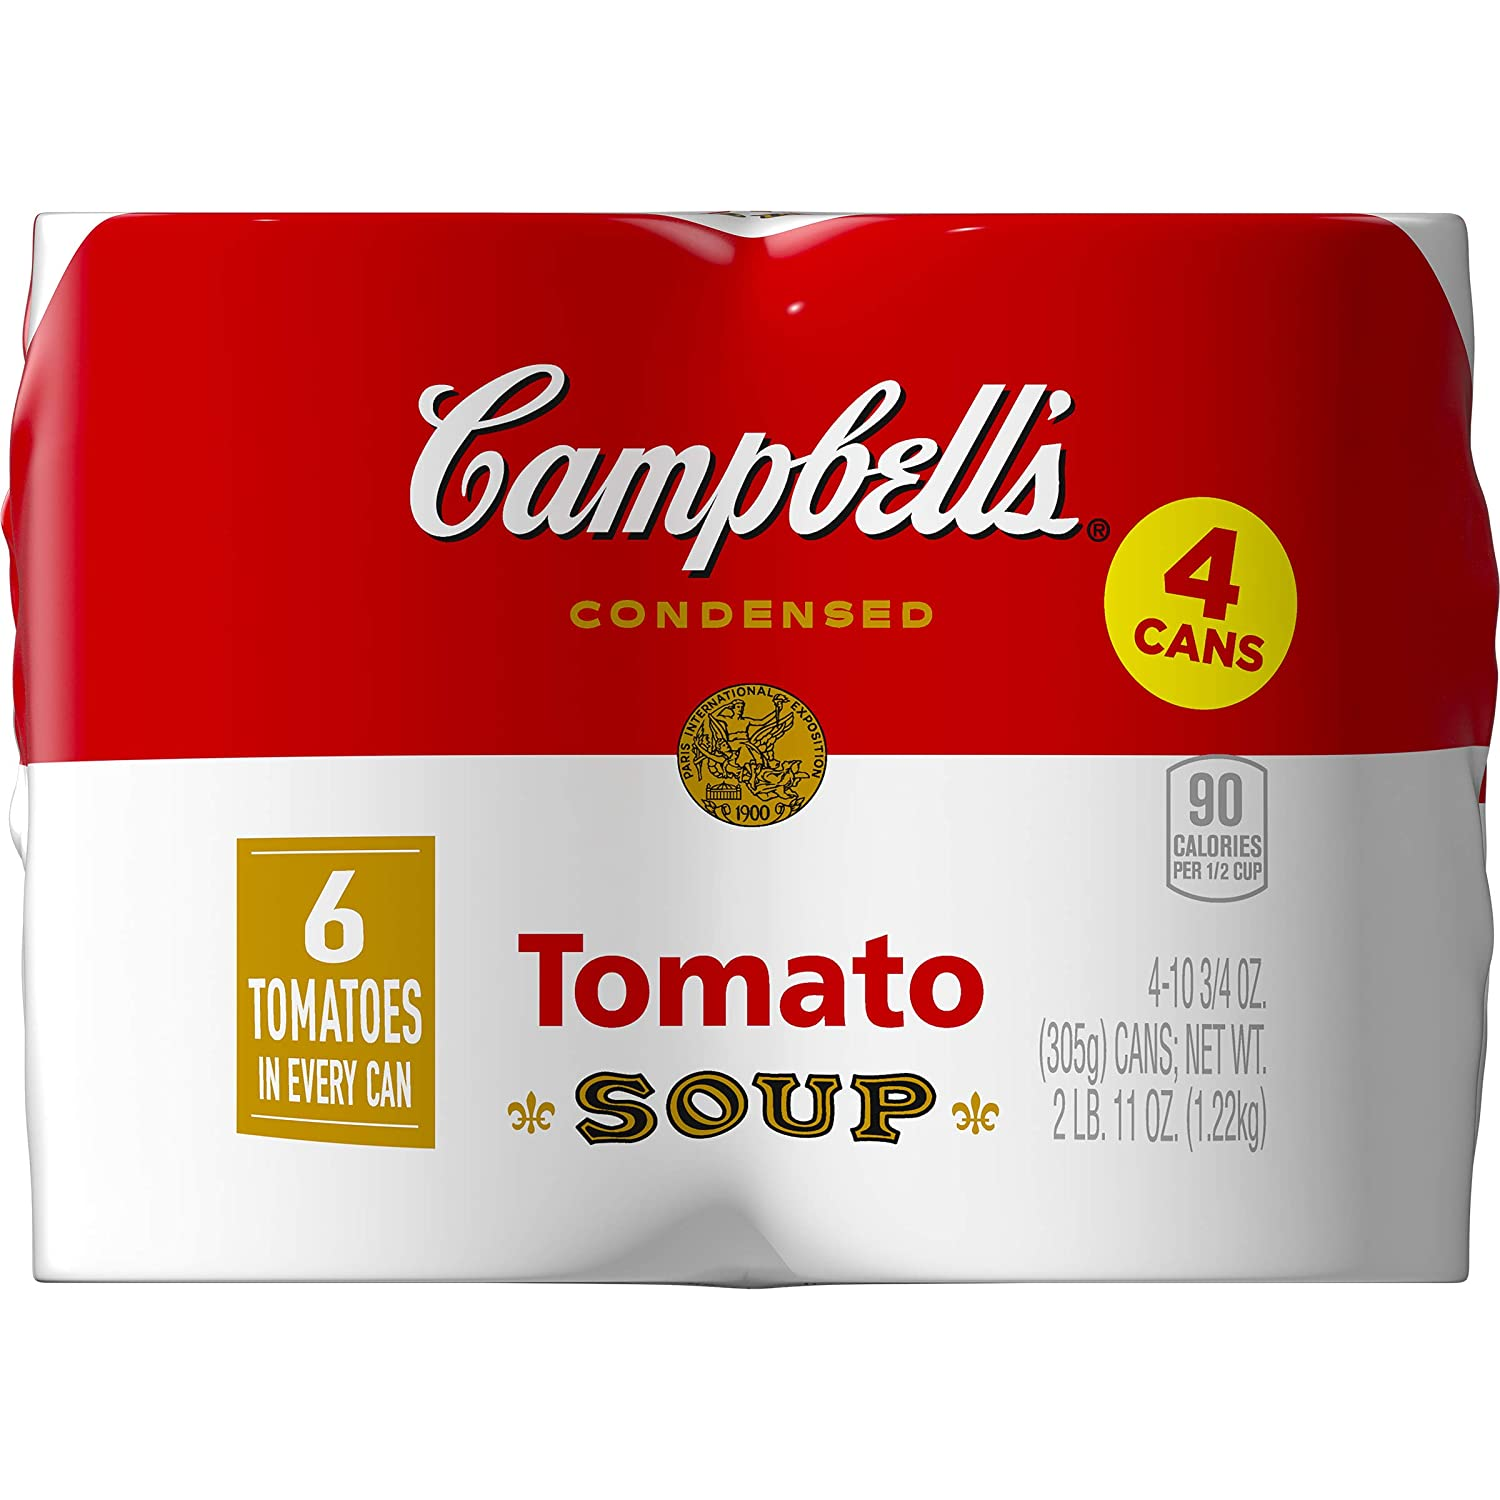 Campbell's Condensed Soup, Tomato, 4-pack, 43 oz